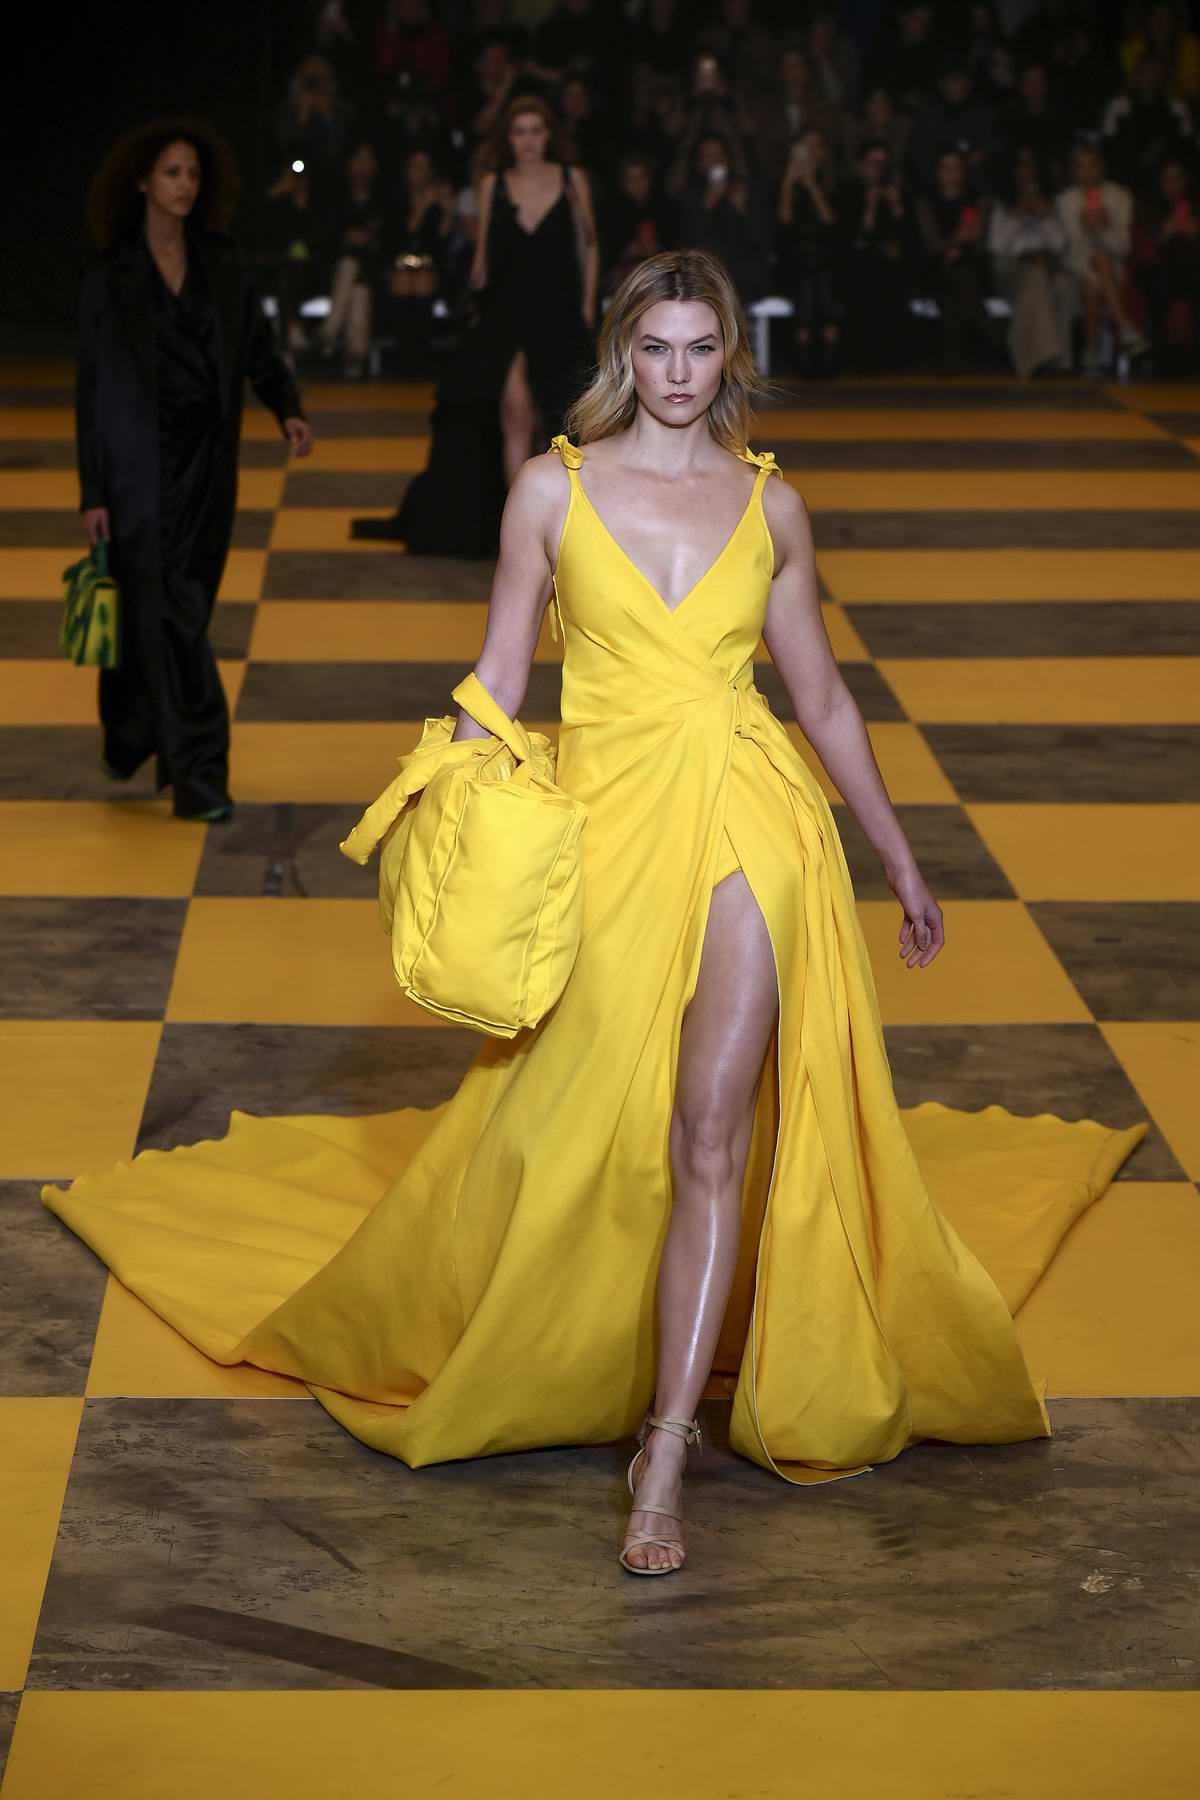 Karlie Kloss walks the runway at the Off-White Women's F/W 2019/20 Fashion Show during Paris Fashion Week in Paris, France